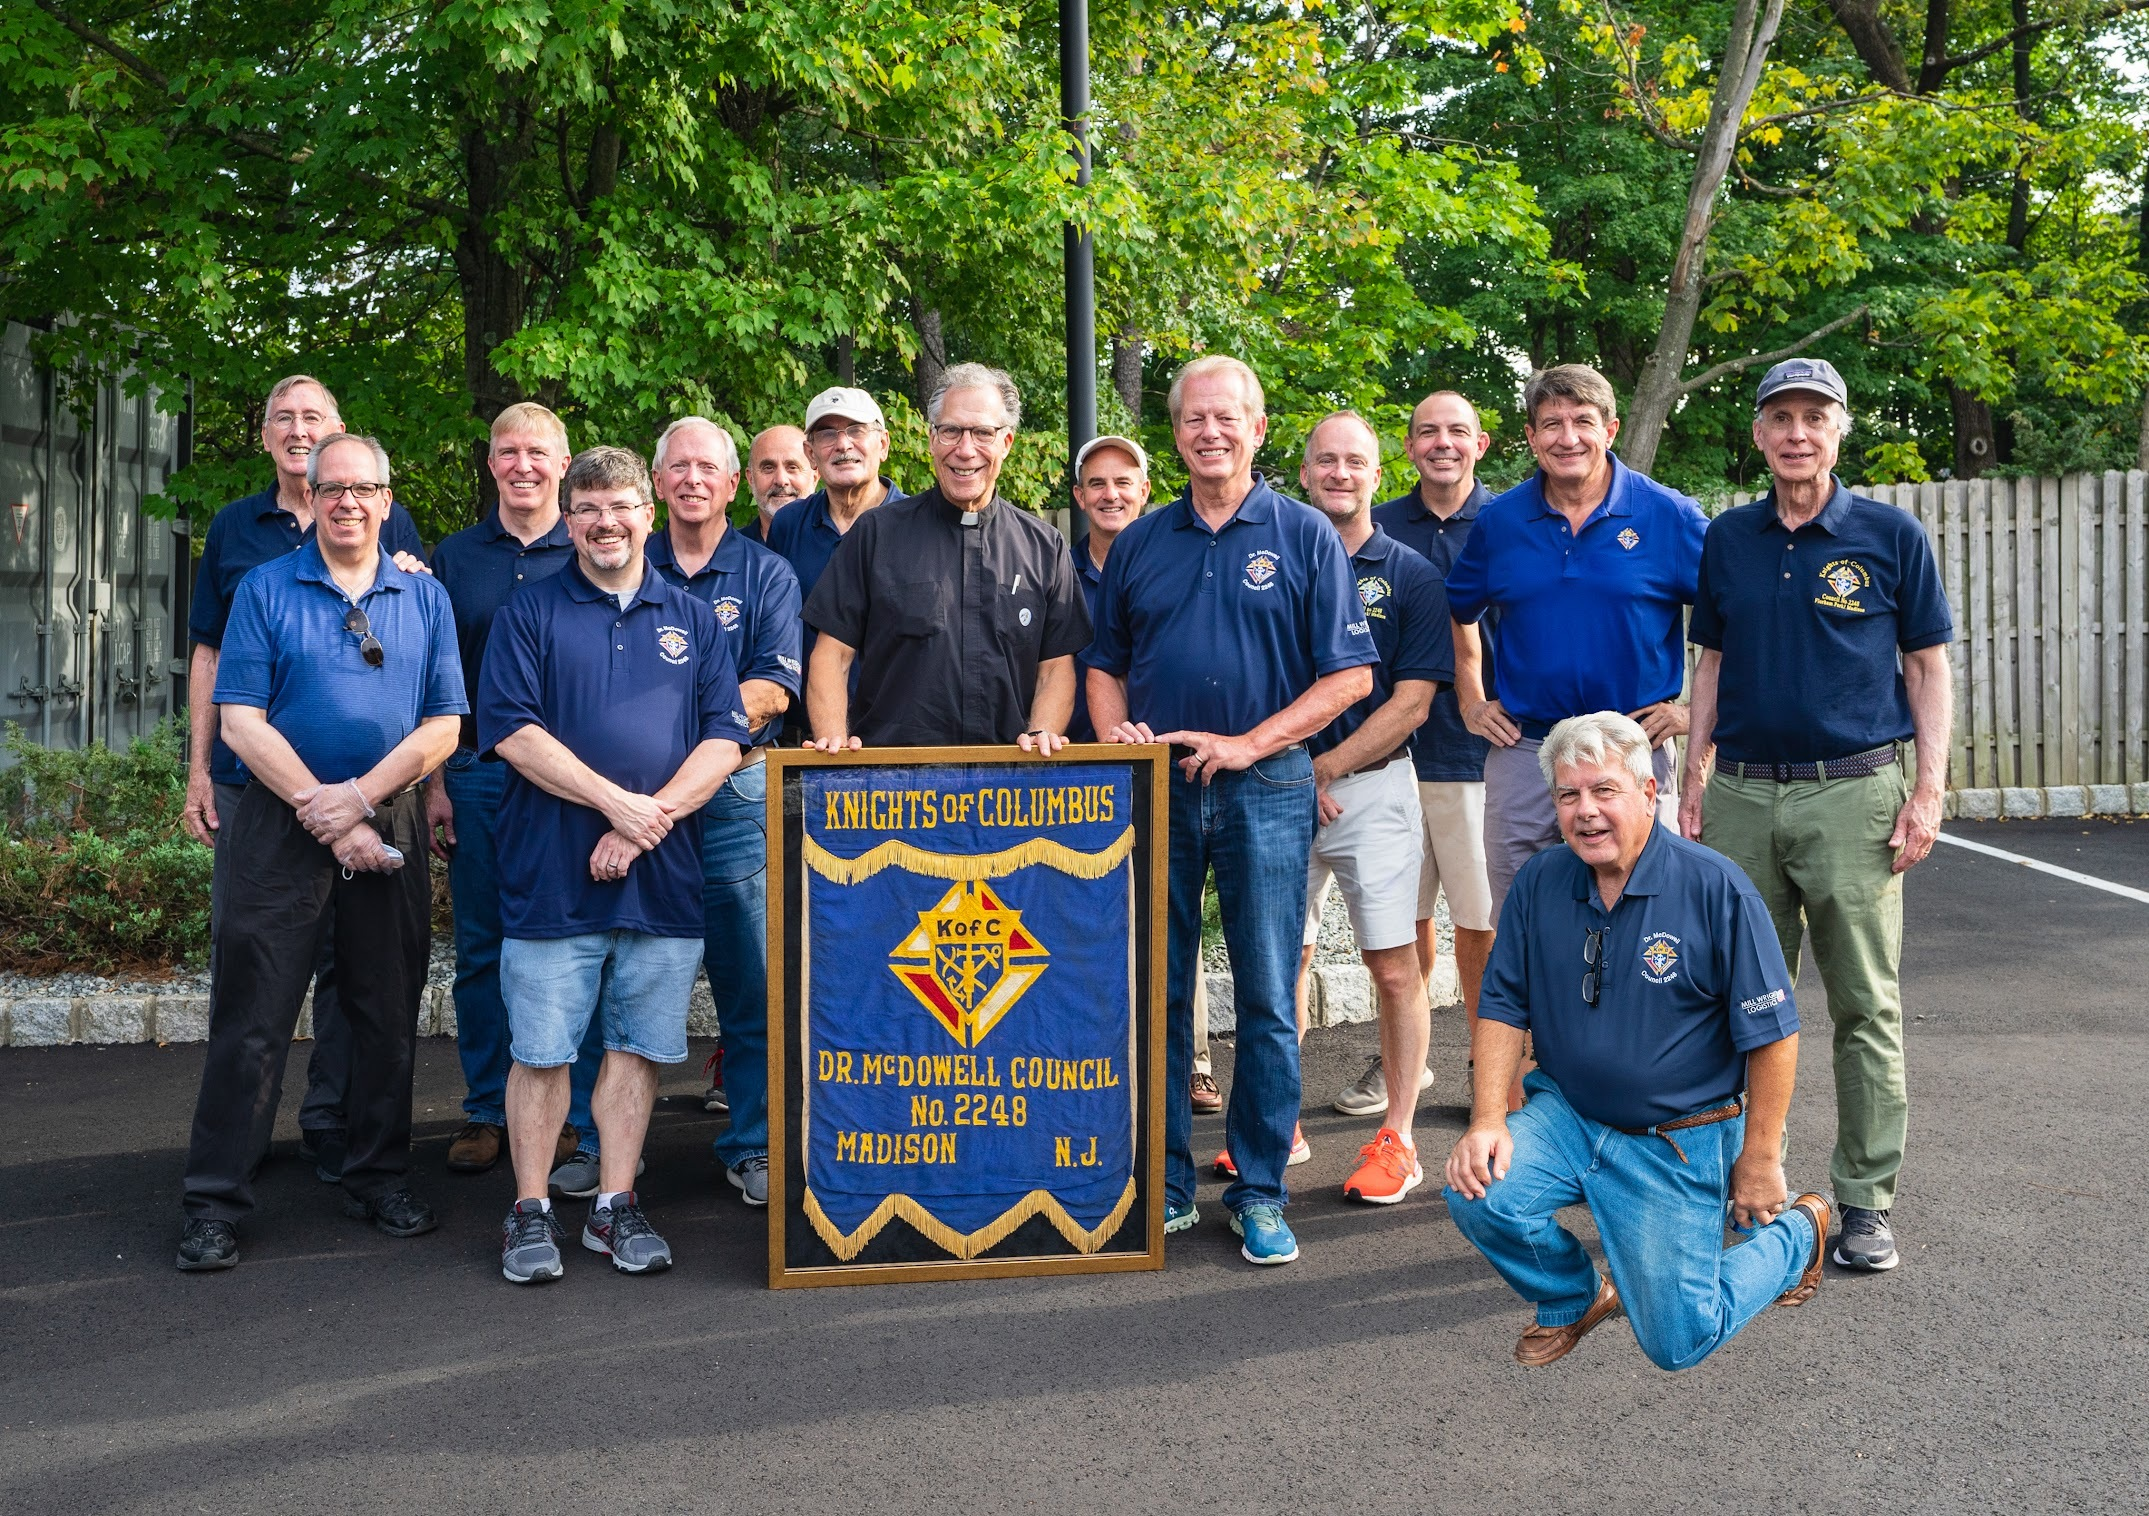 Knights of Columbus celebrate their  year anniversary at SVM.